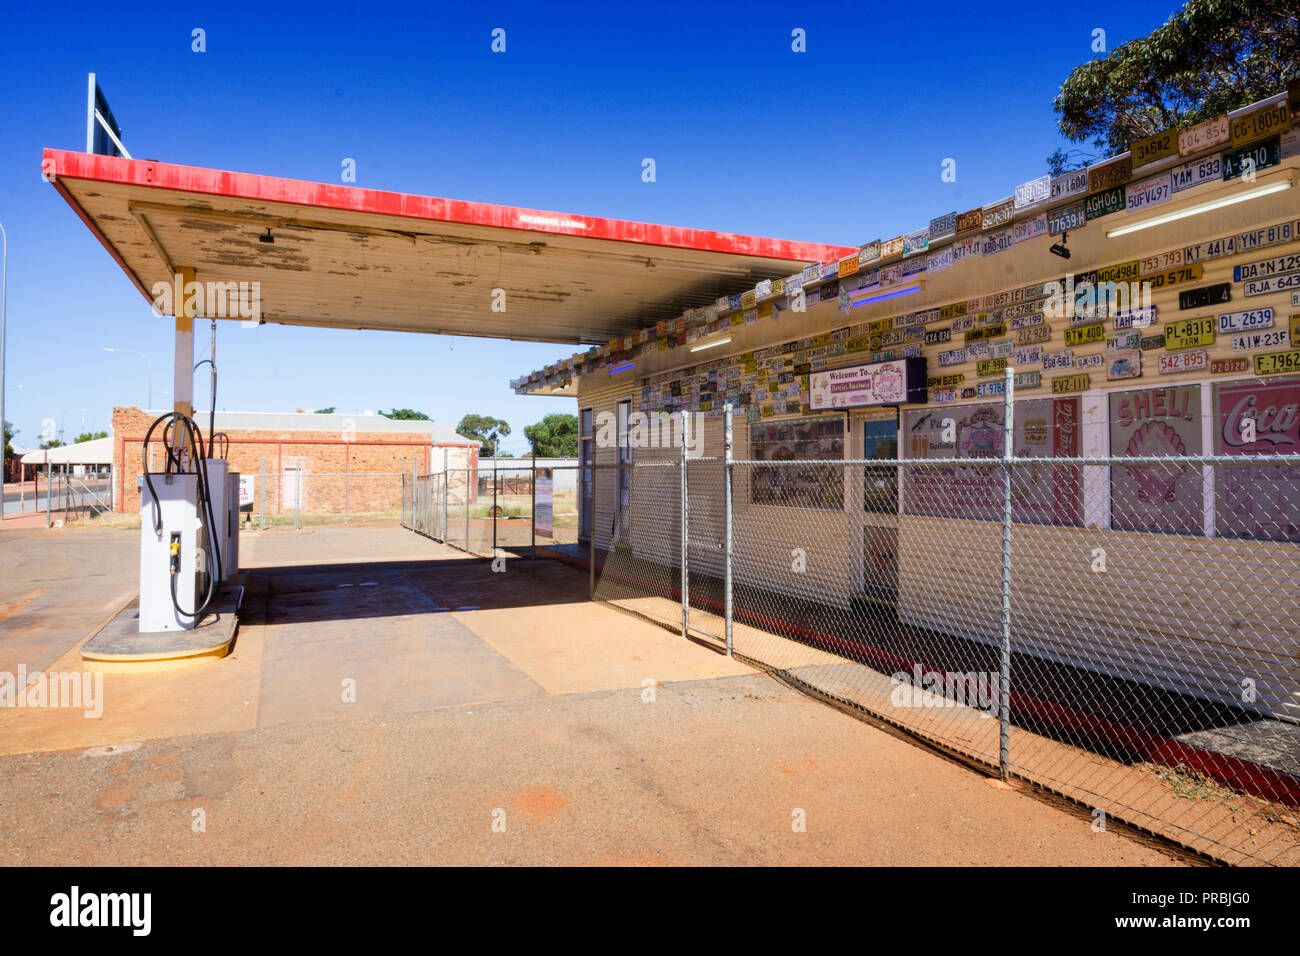 The disused Menzies roadhouse is decorated with number plates and is serviced by 24 hour automatic fuel pumps, Menzies Western Australia - Stock Image